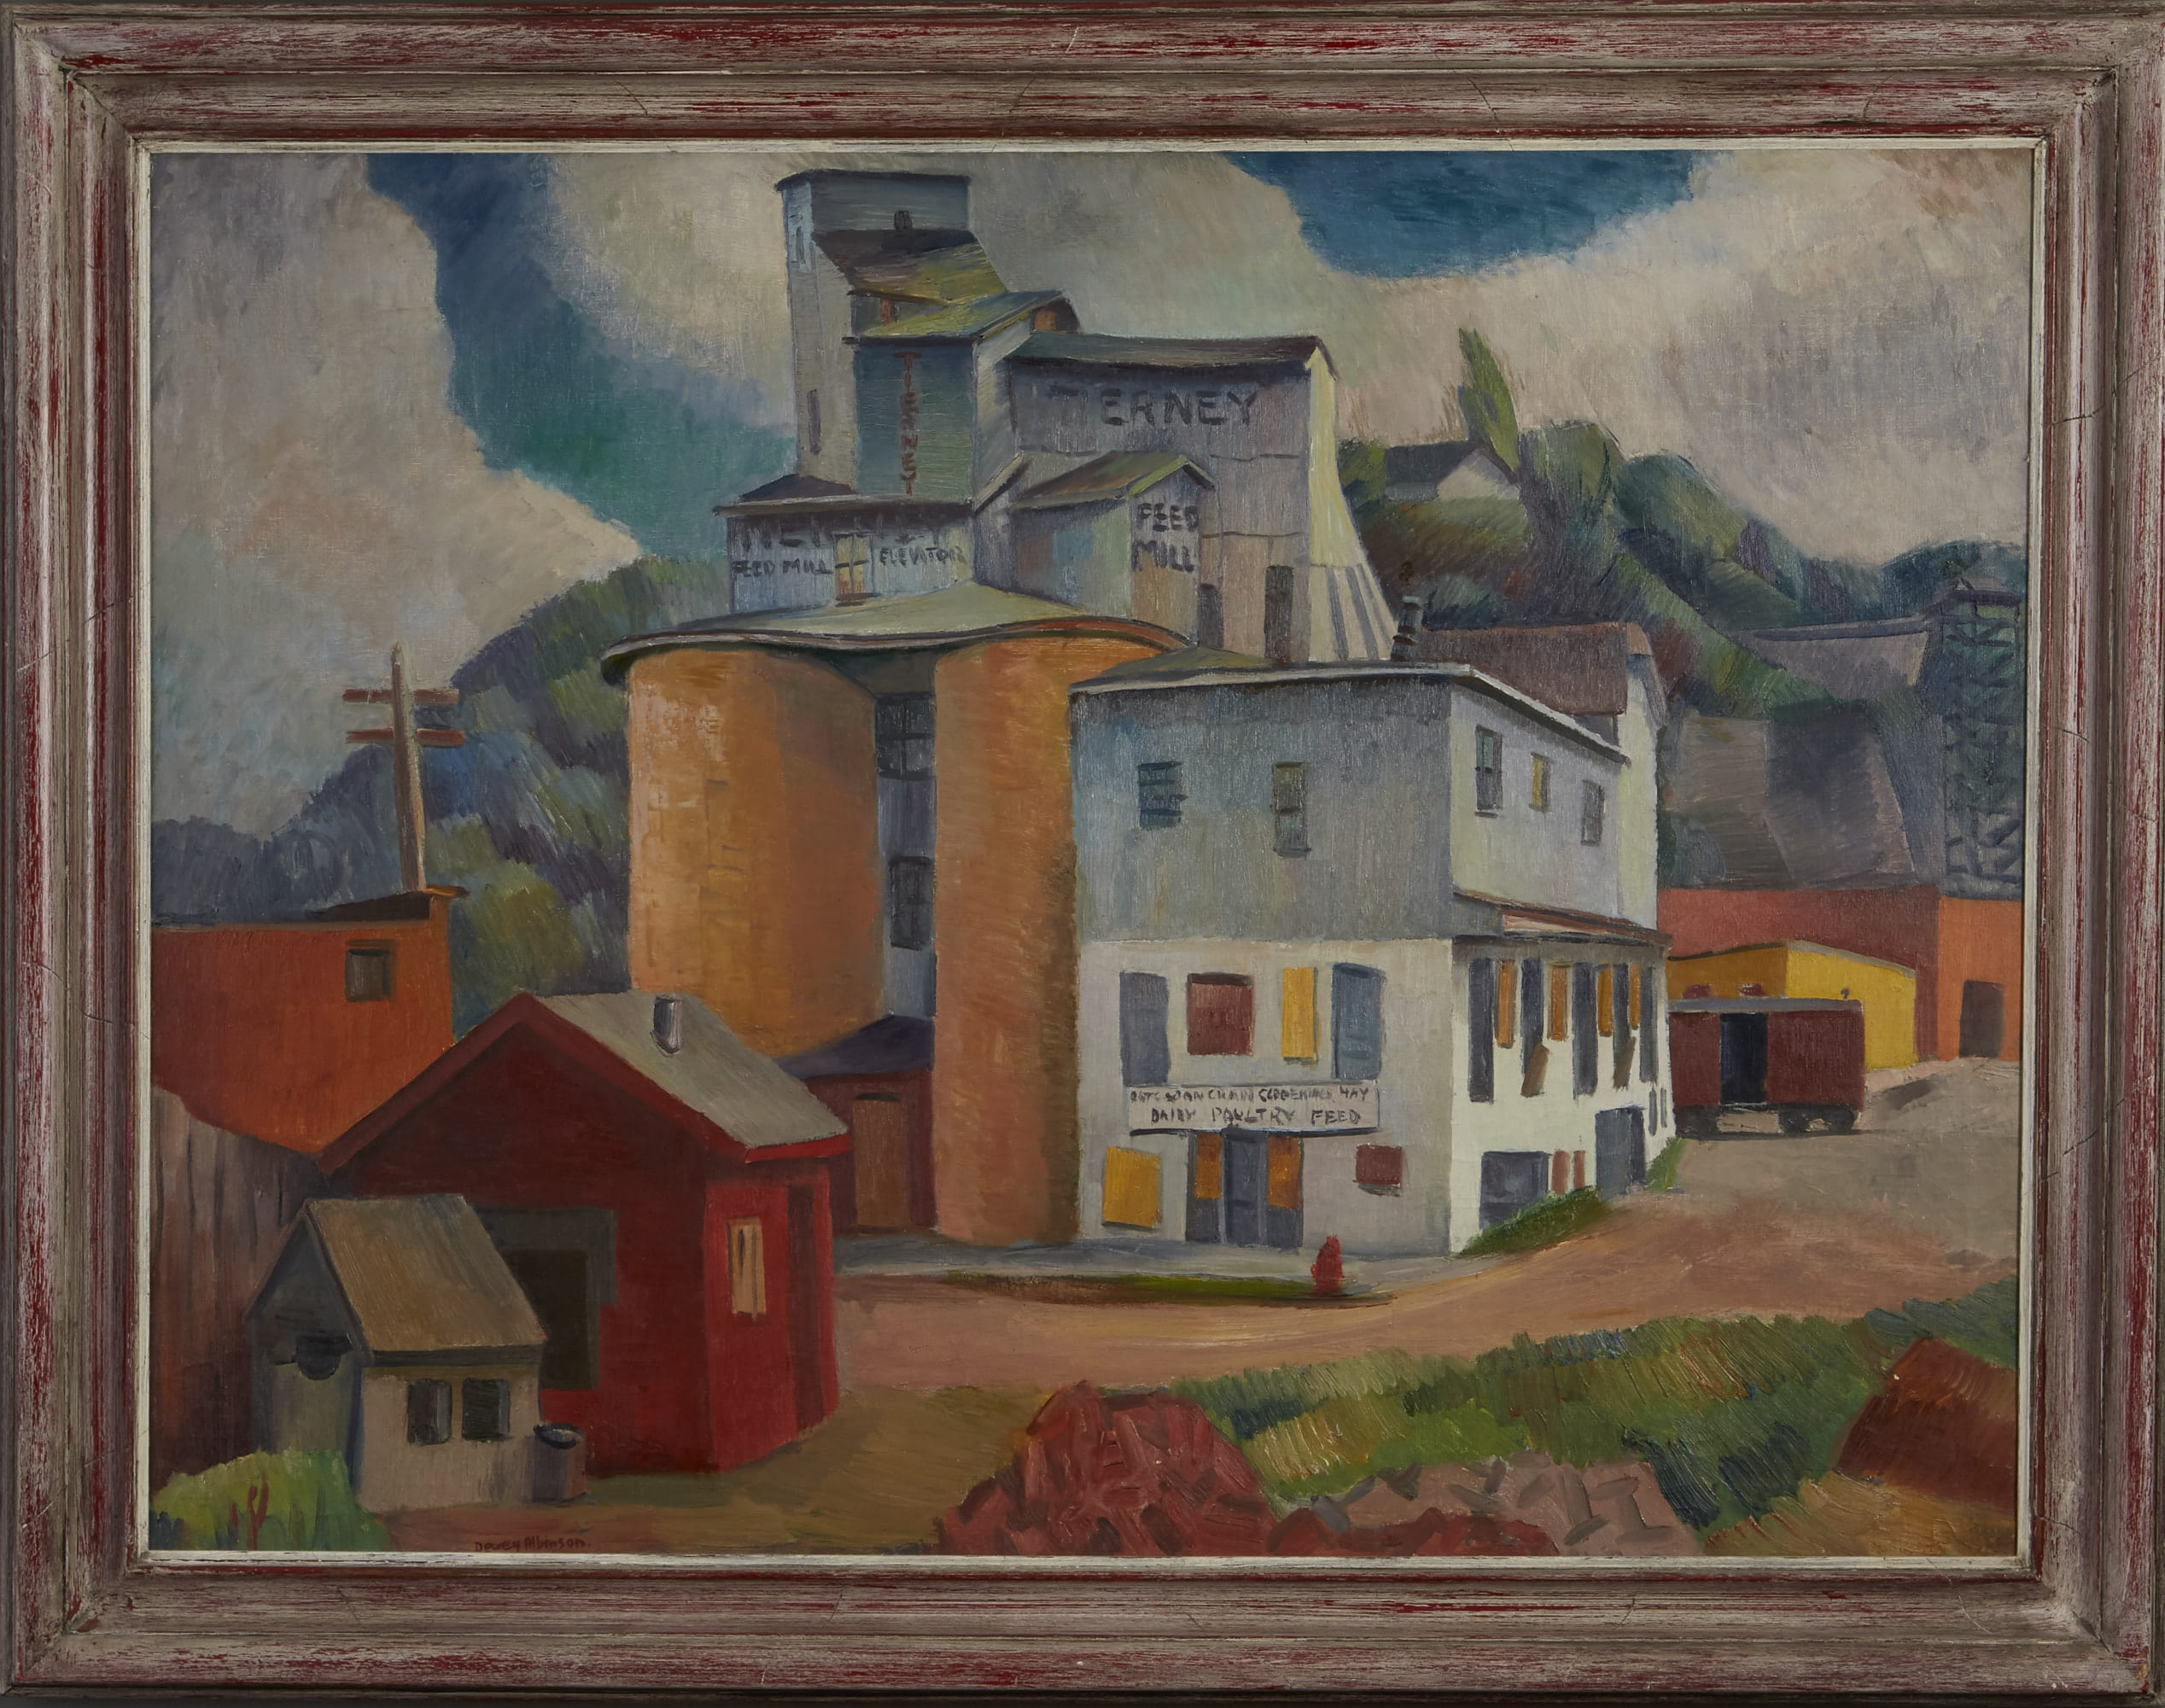 Lot 006: Dewey Albinson Tierney Mills Oil on Canvas